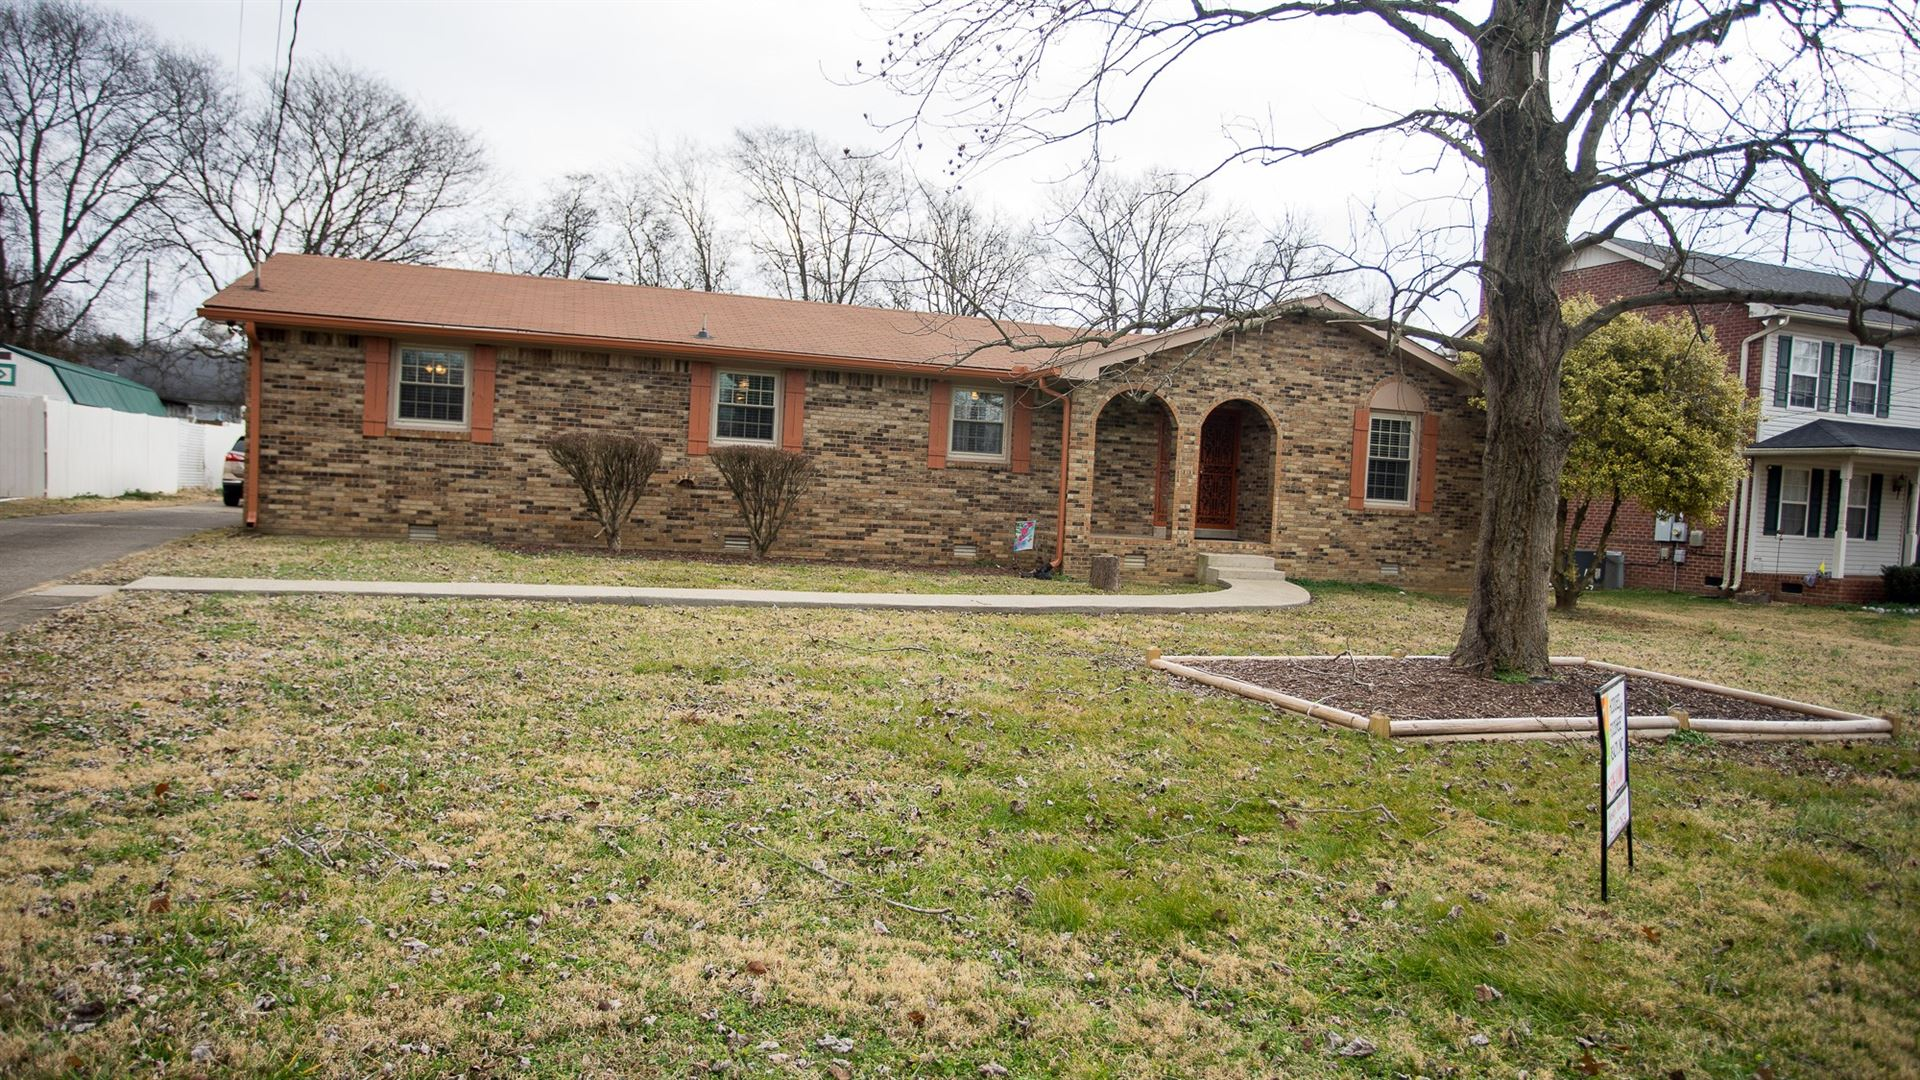 111 Gayle Dr, Old Hickory, TN 37138 - MLS#: 2219725